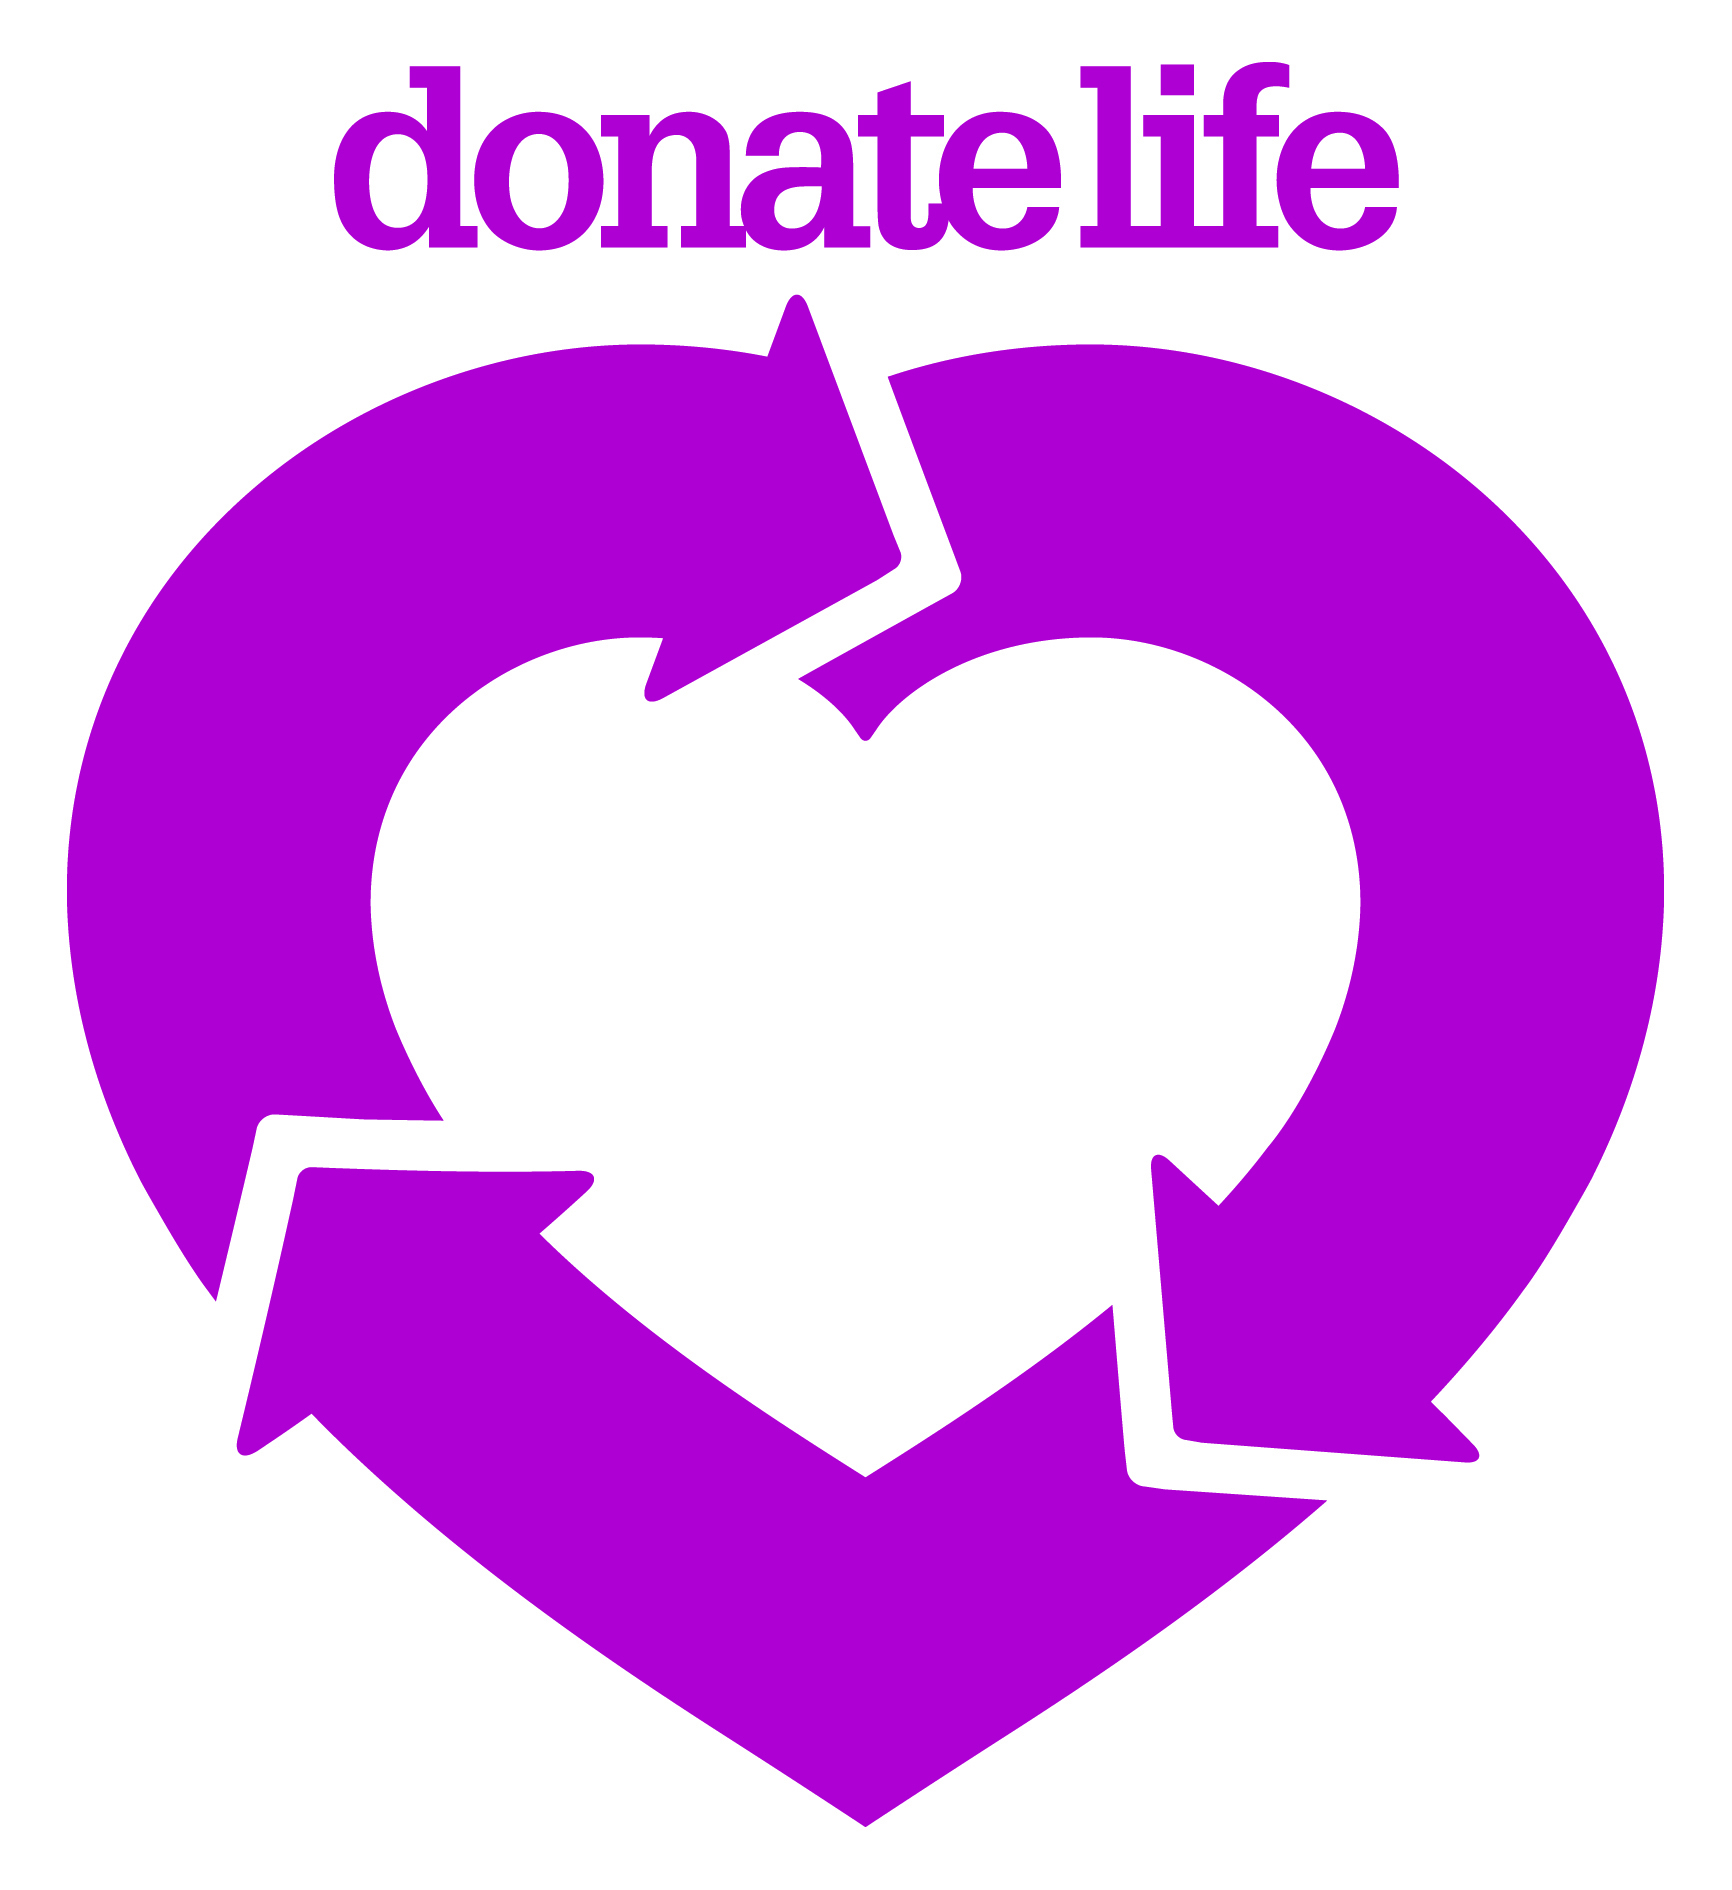 Organs clipart organ donation So to In gears Aspelin